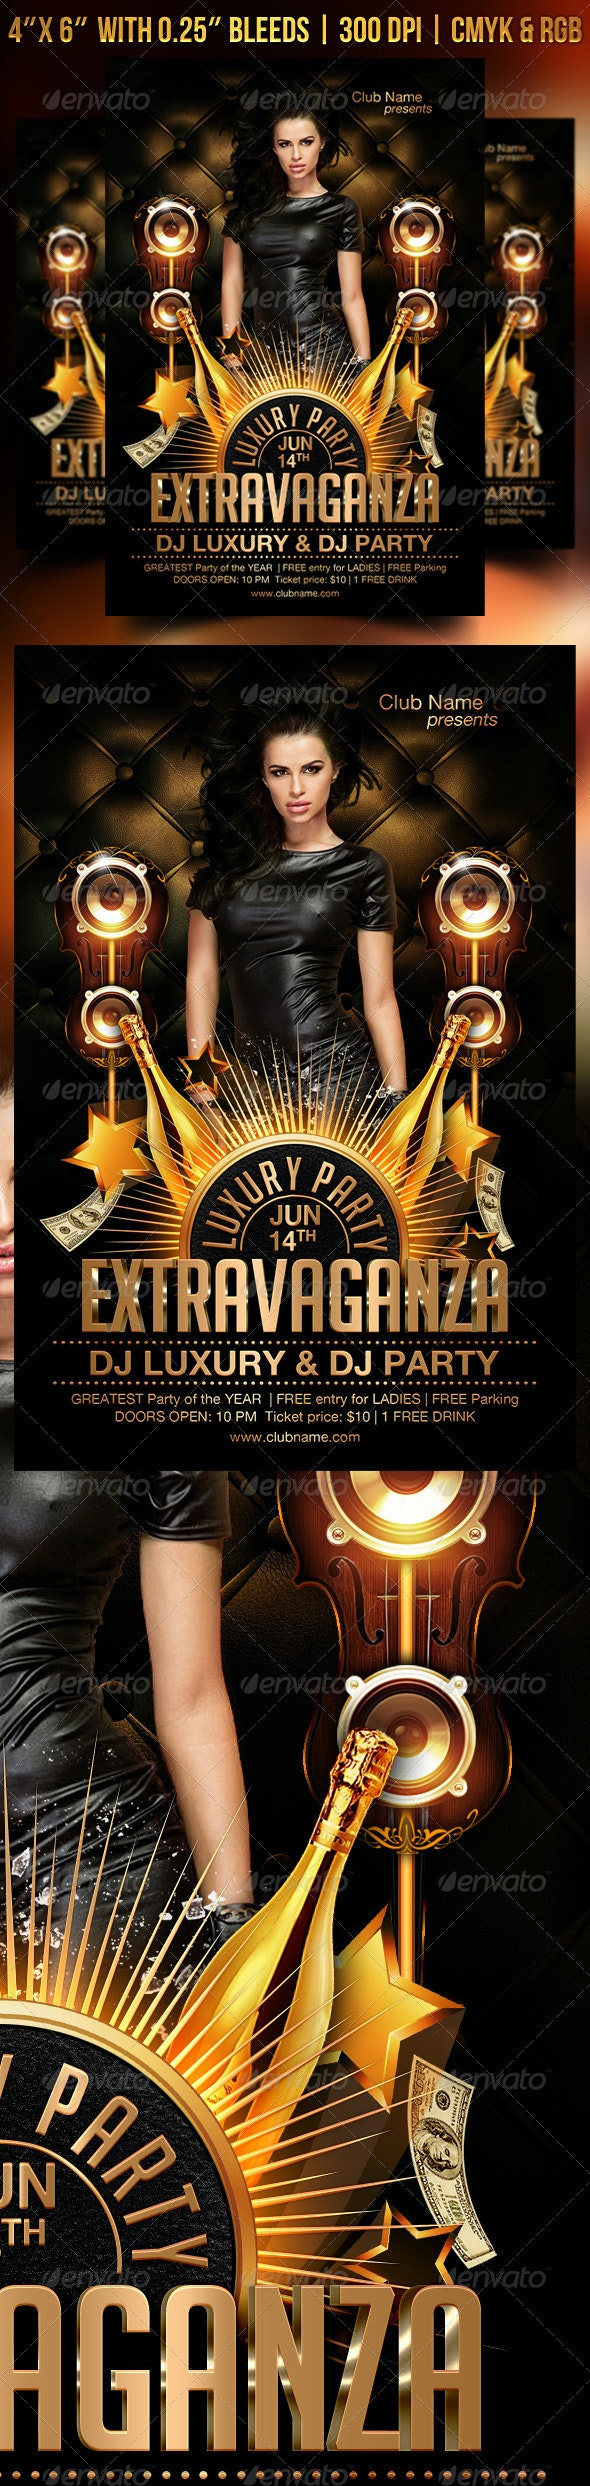 Extravaganza Luxury Flyer Template - Clubs & Parties Events